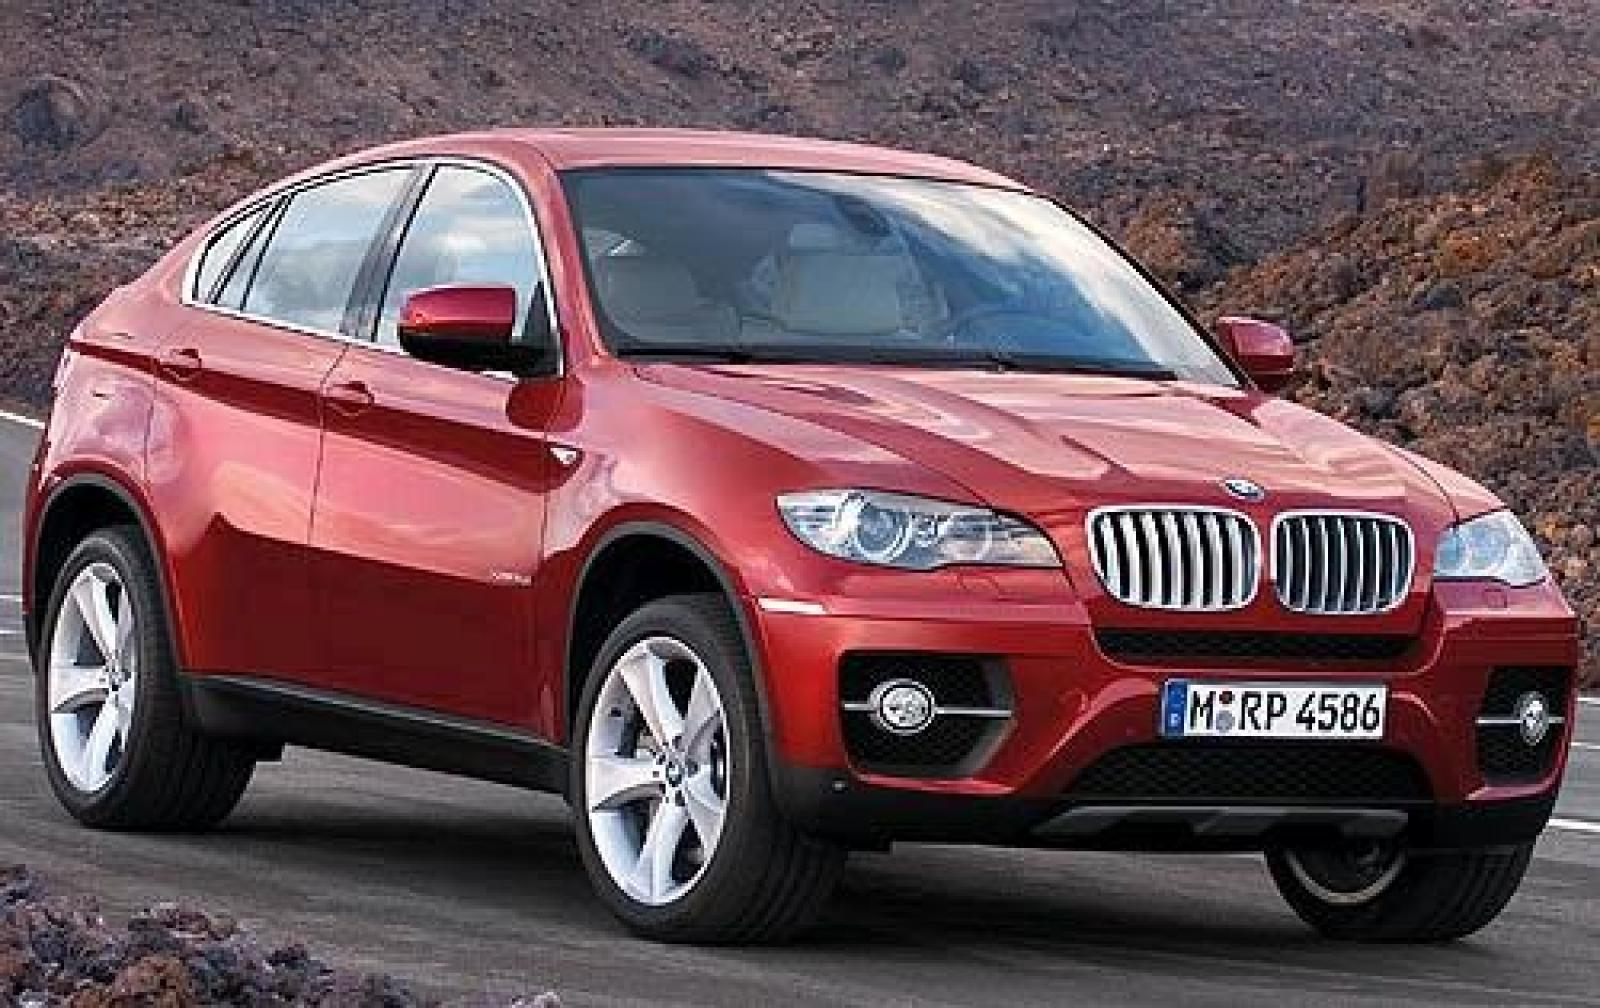 BMW X Information And Photos ZombieDrive - Bmw 2010 suv